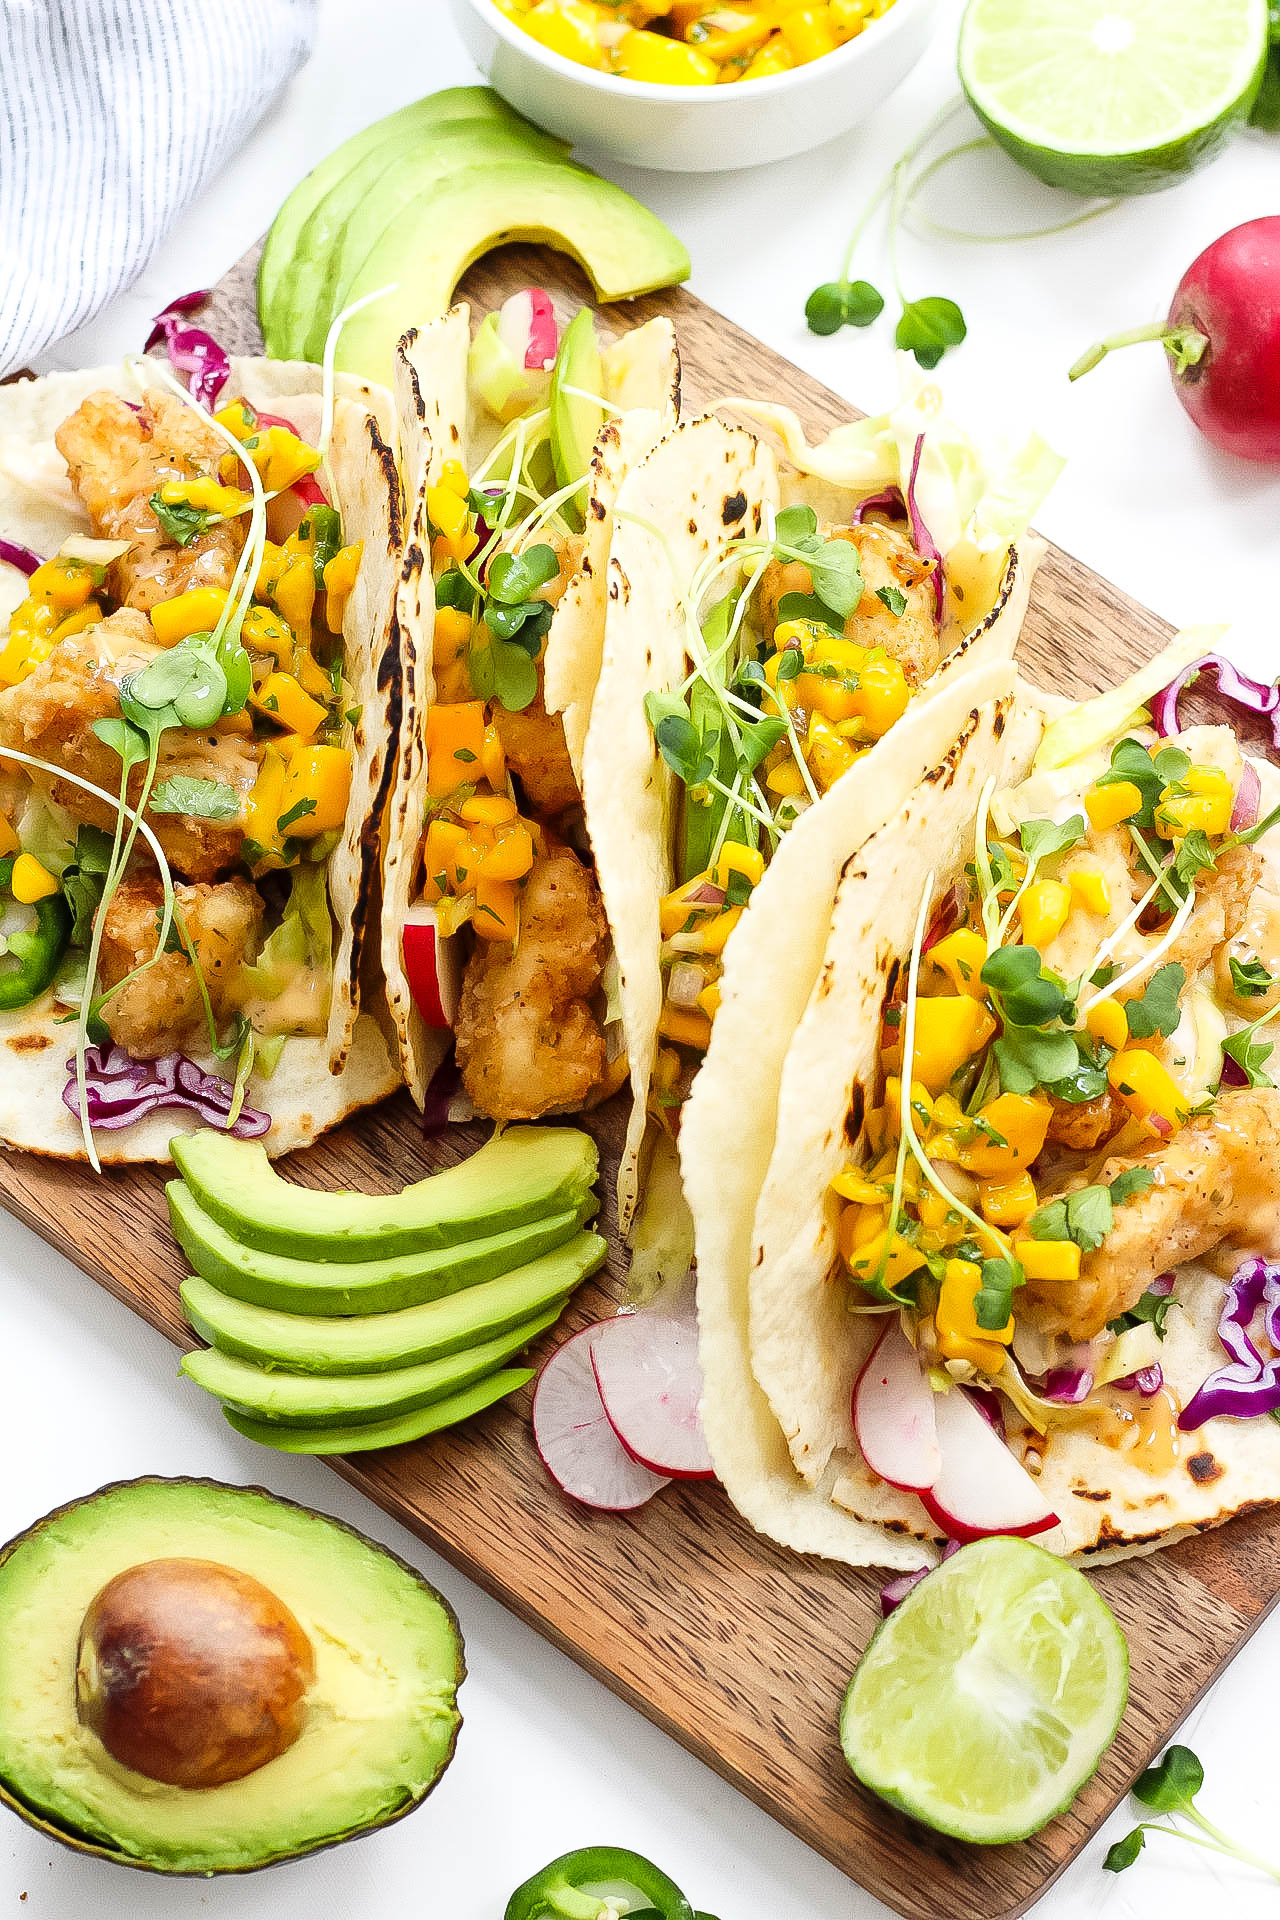 These grain free tacos is a fun and quick breaded fish recipe with easy mango salsa! Paleo fish tacos are totally gluten-free, family friendly, and even Whole30 if you skip the grain free tortilla and go for a lettuce wrap fish taco! Either way, these paleo fish tacos will be a summer favorite! #paleofishtacos #grainfreetacos #paleofish